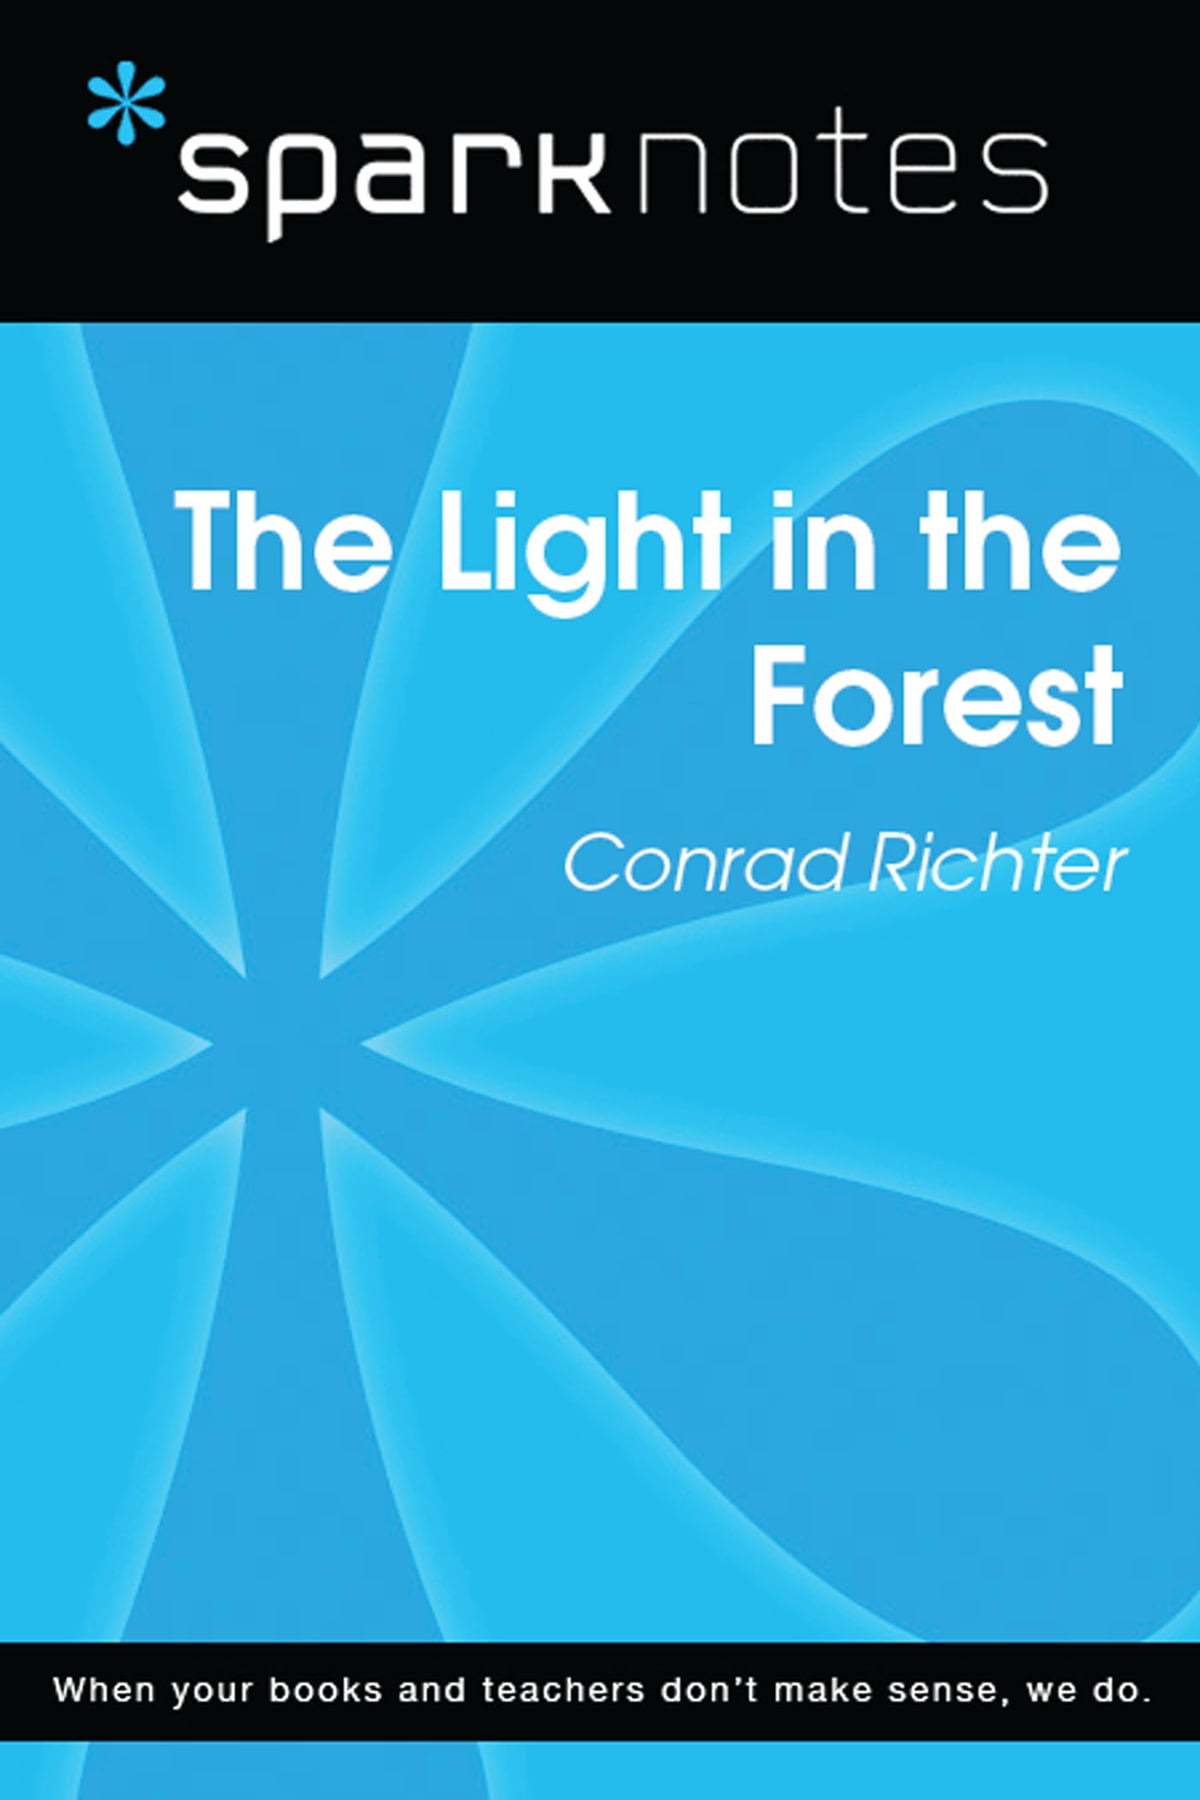 The light in the forest book summary